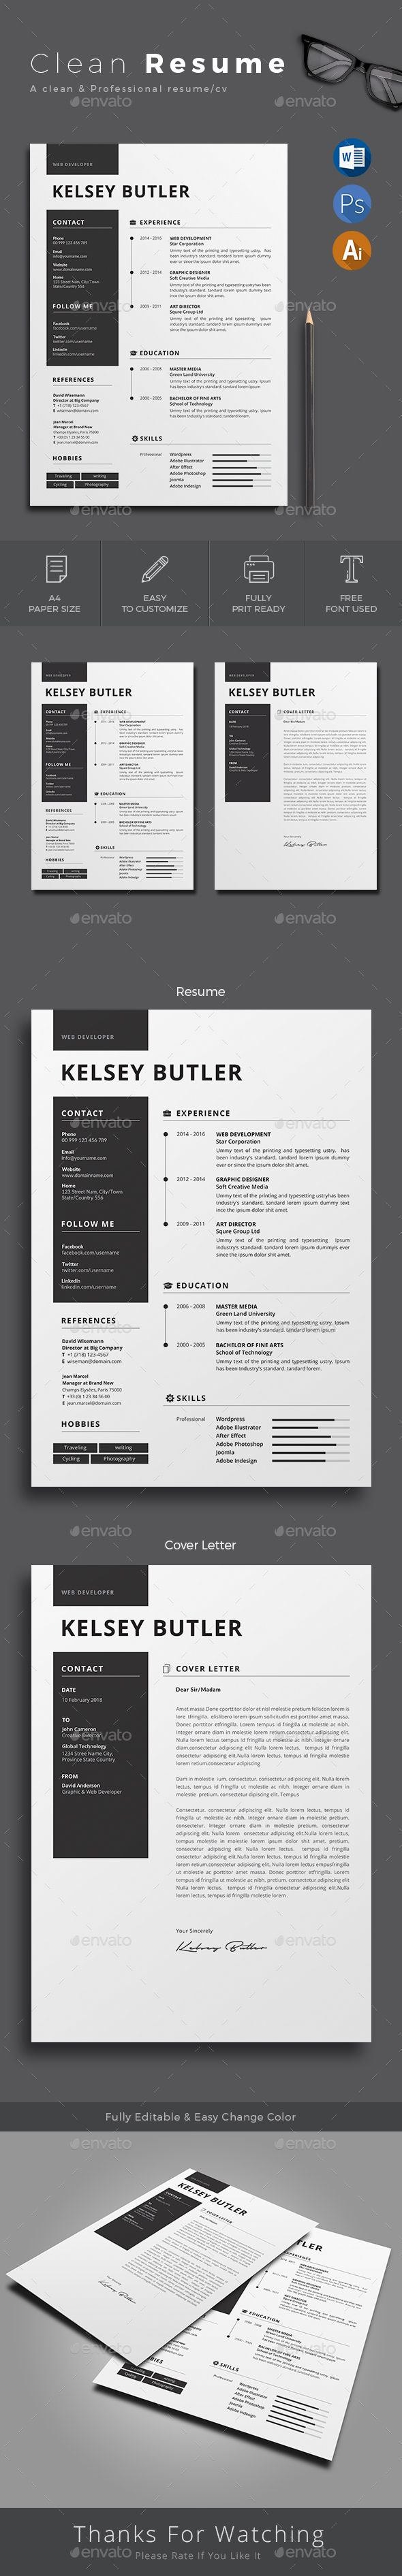 Resume Cv Resume TemplateResume 1086 best